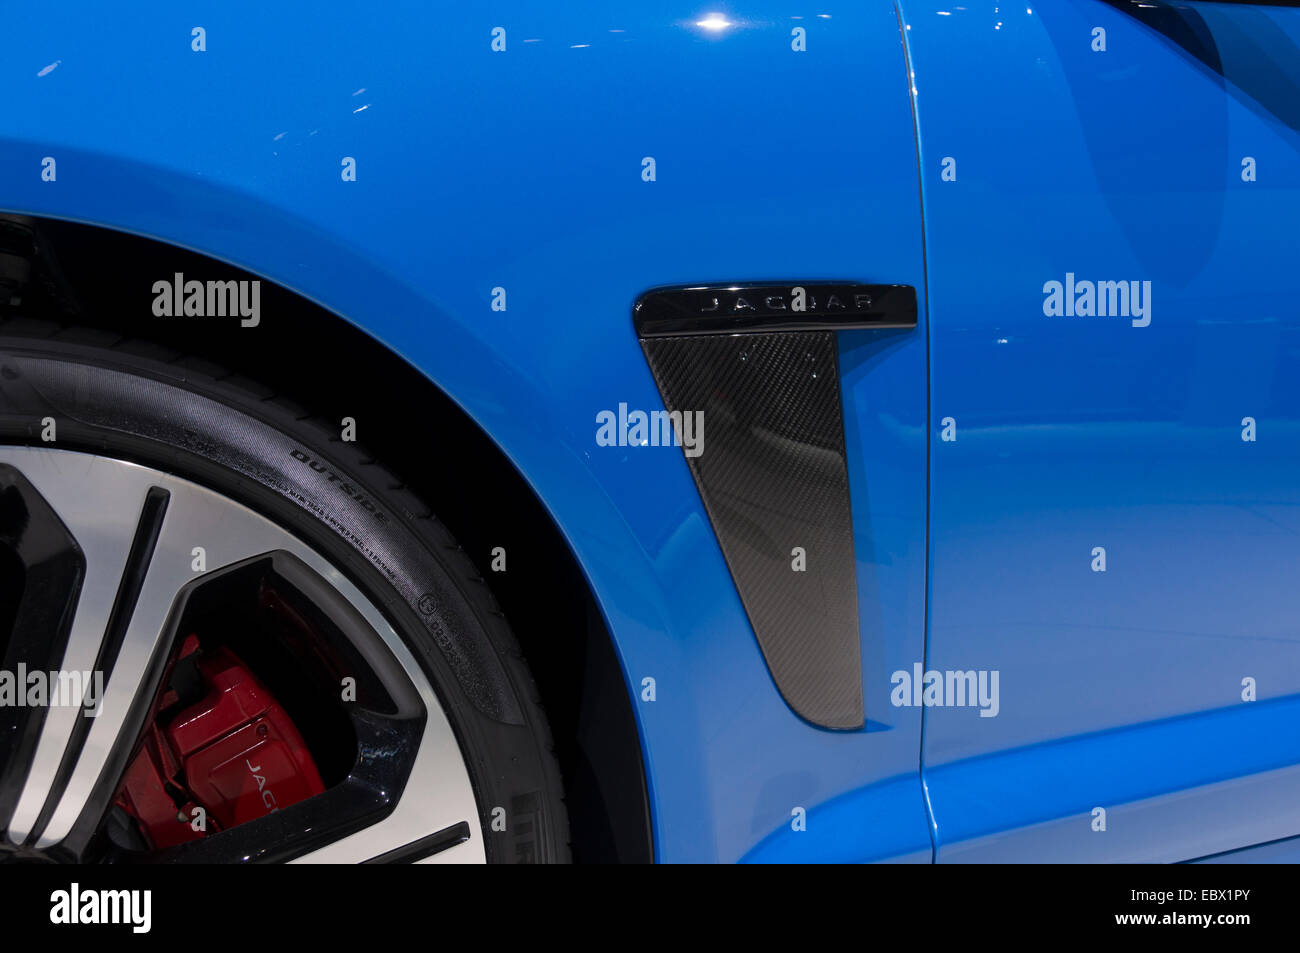 detail of Jaguar wheel with red brake assembly and bodypart with jaguar on it. J - Stock Image